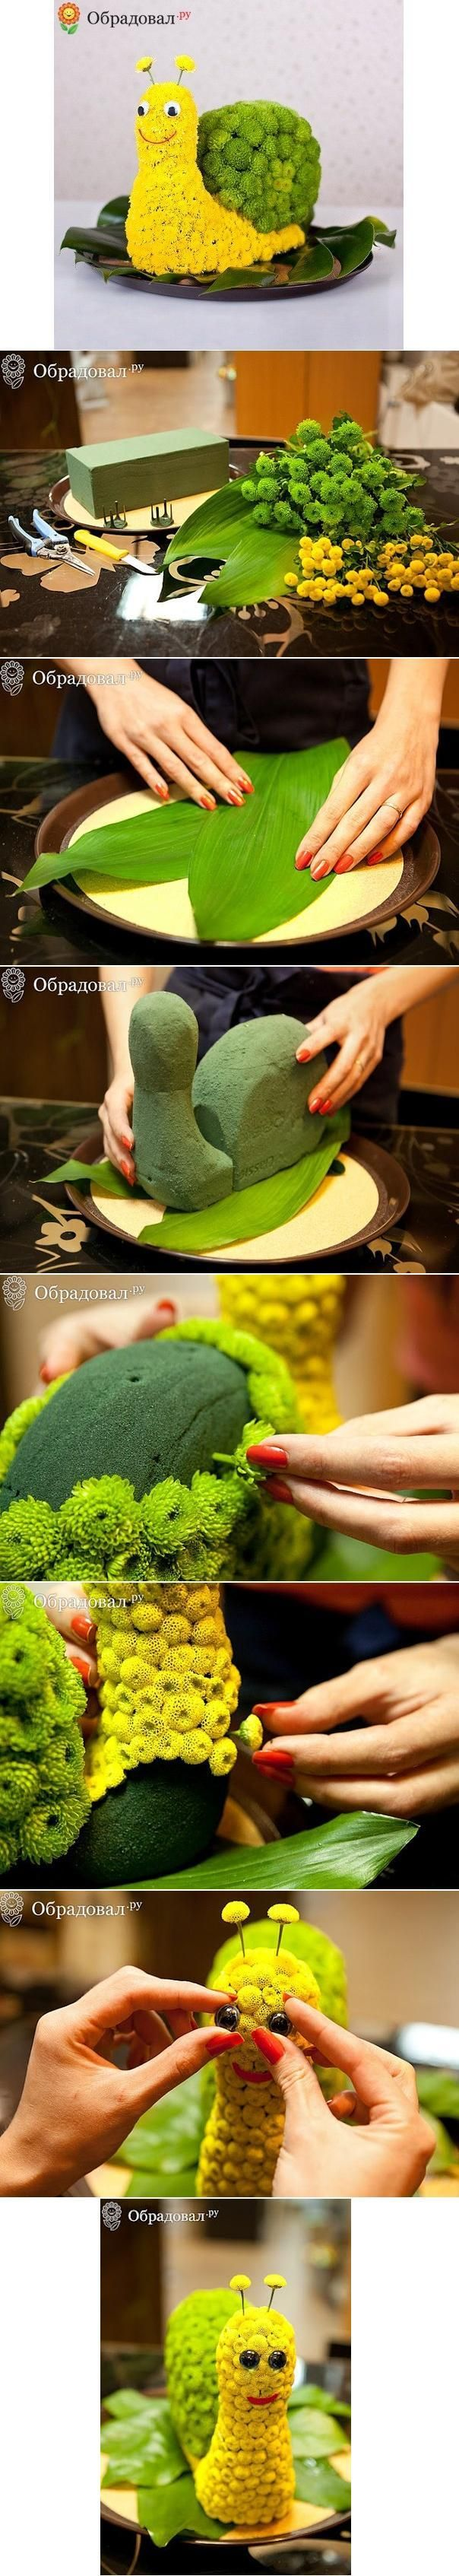 DIY Smiling Snail DIY Projects